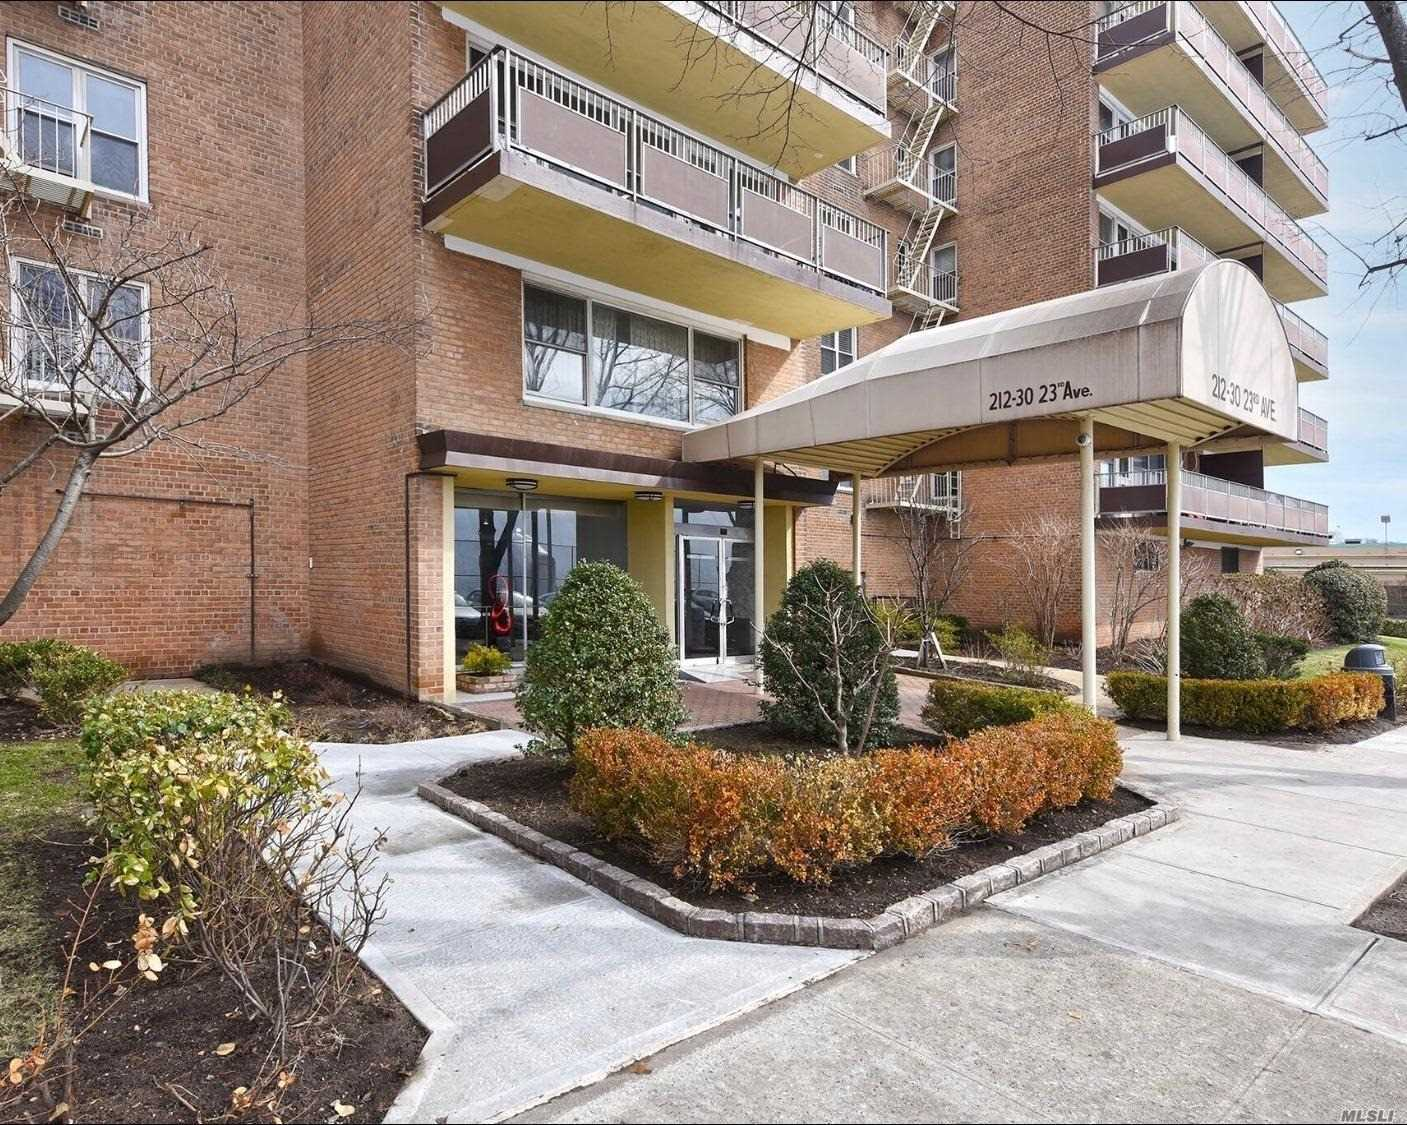 Beautiful Bright Spacious 1 Bedroom Unit W/ Updated Granite Kitchen W/ Custom Cabinets , Large L-Shape Living Room/ Dining Room, Marble Bath, Large Private Balcony , Closets Galore, Nest Heating & Cac Must See !!! Don't Miss This Beauty !!!